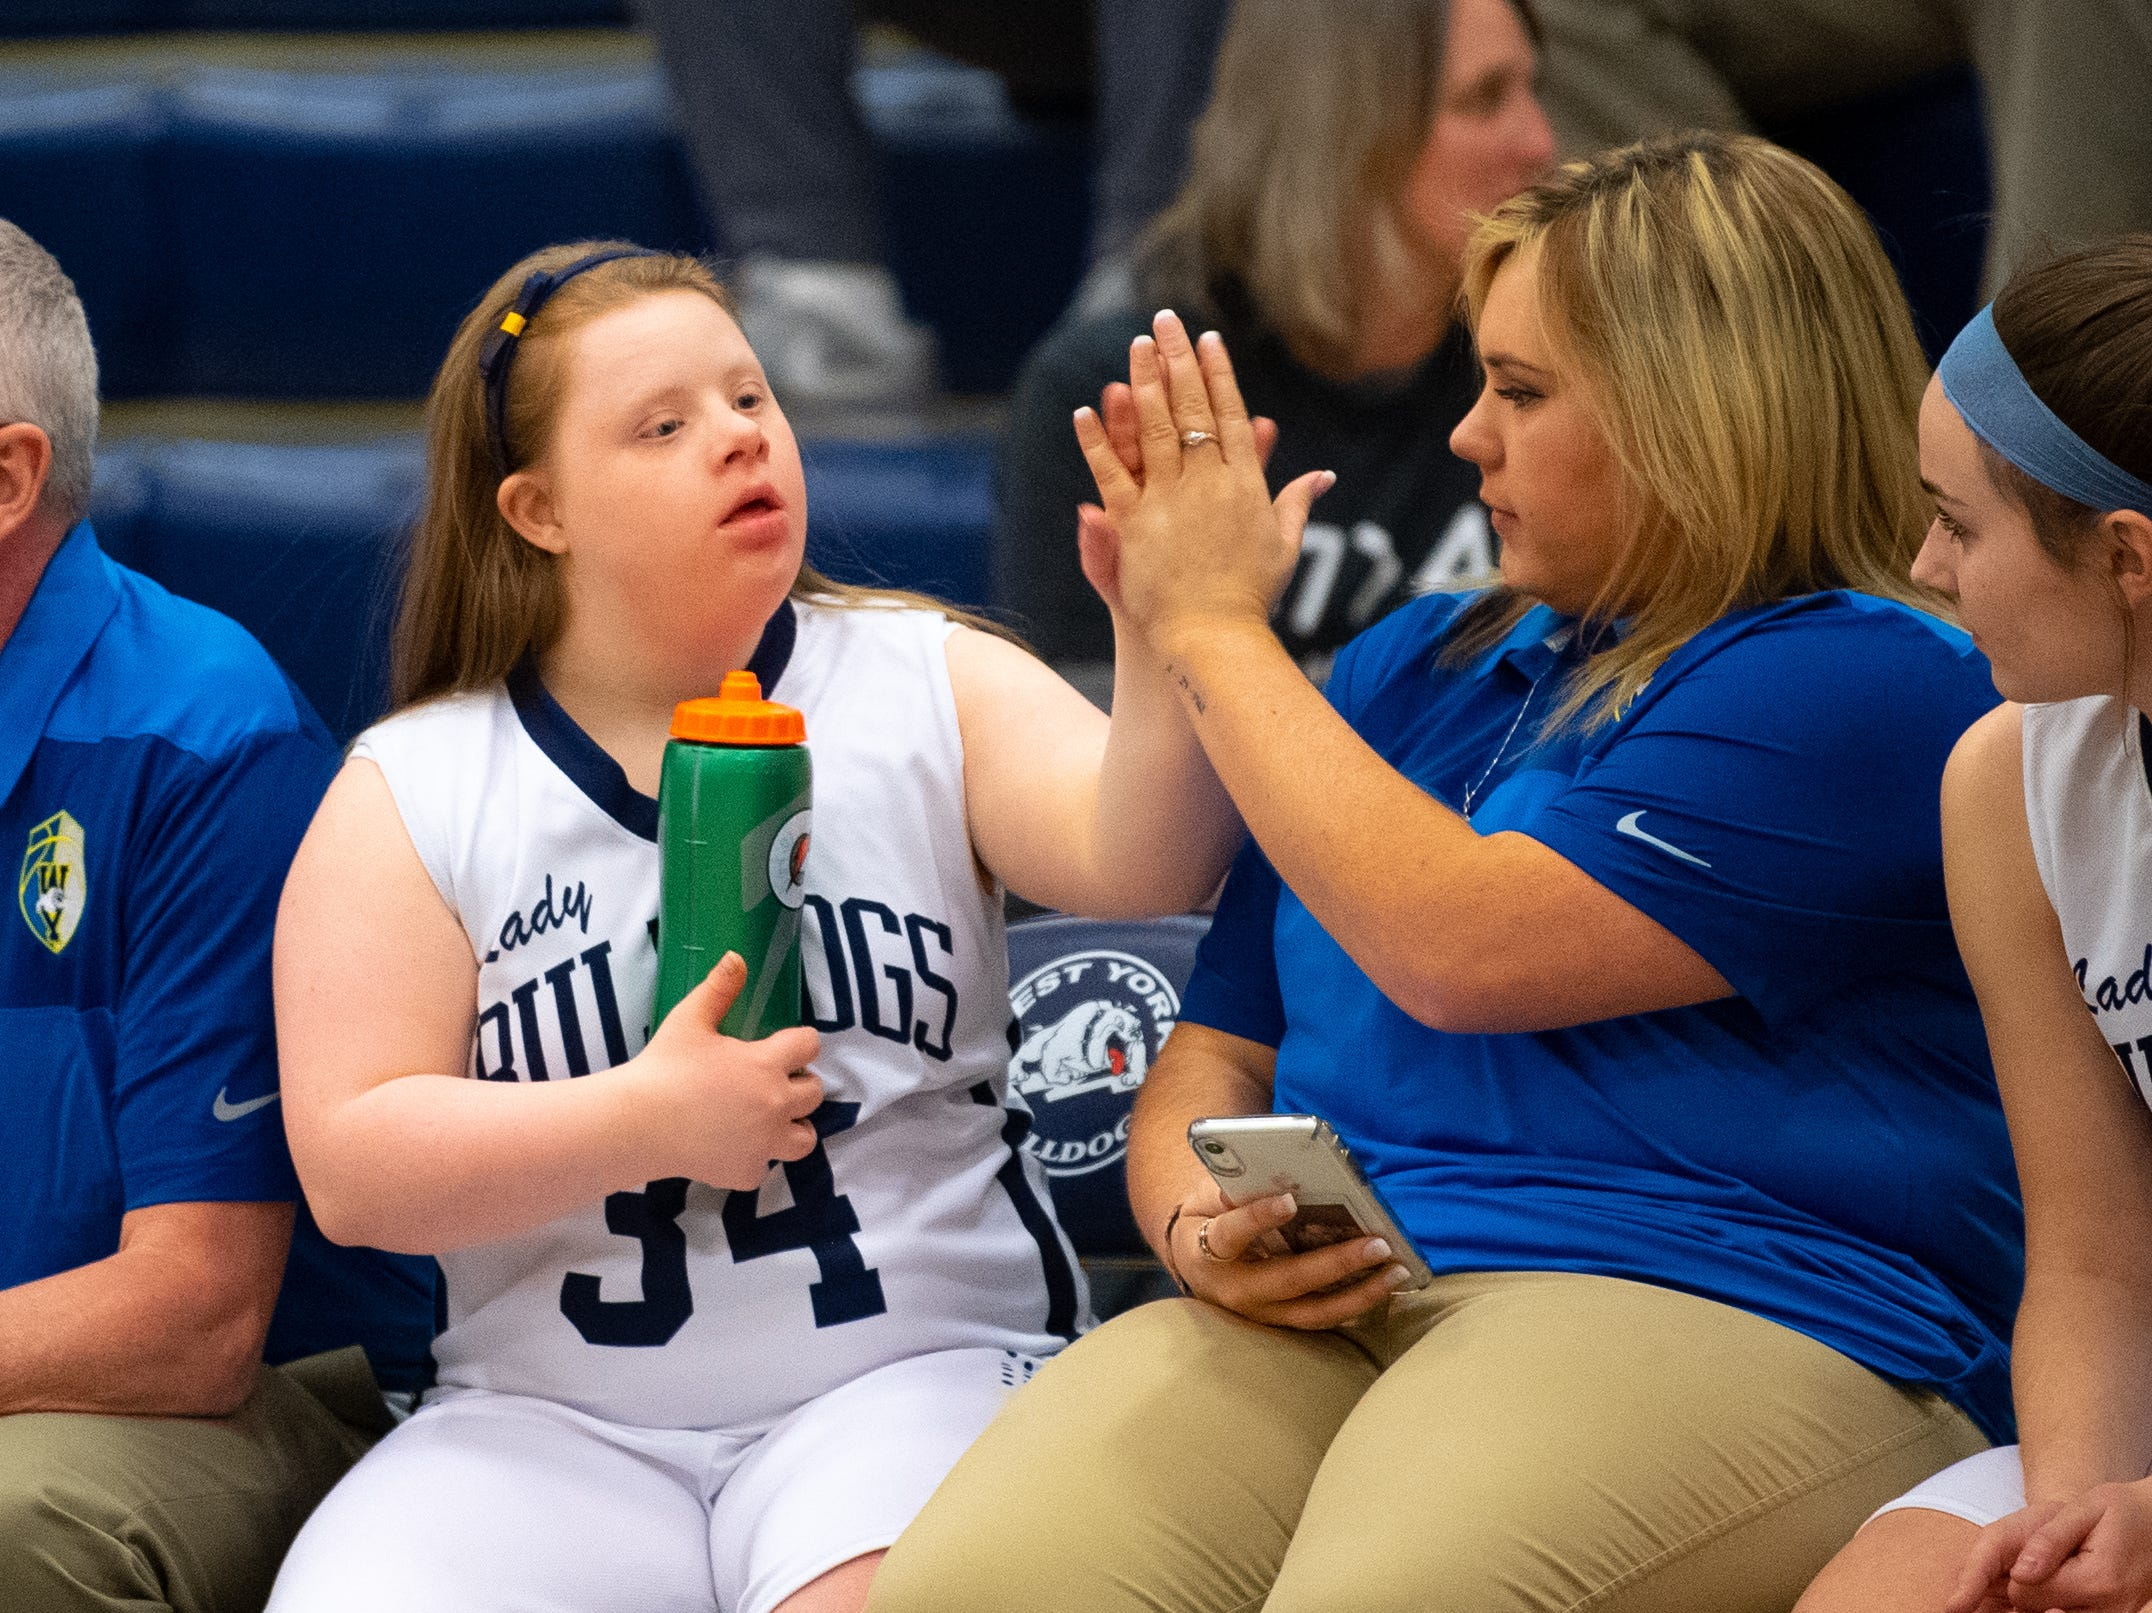 Coach Paige Keiser congratulates Katie Kniery after her junior varsity debut during the junior varsity girls' basketball game between West York and Dover, February 1, 2019 at West York Area High School.